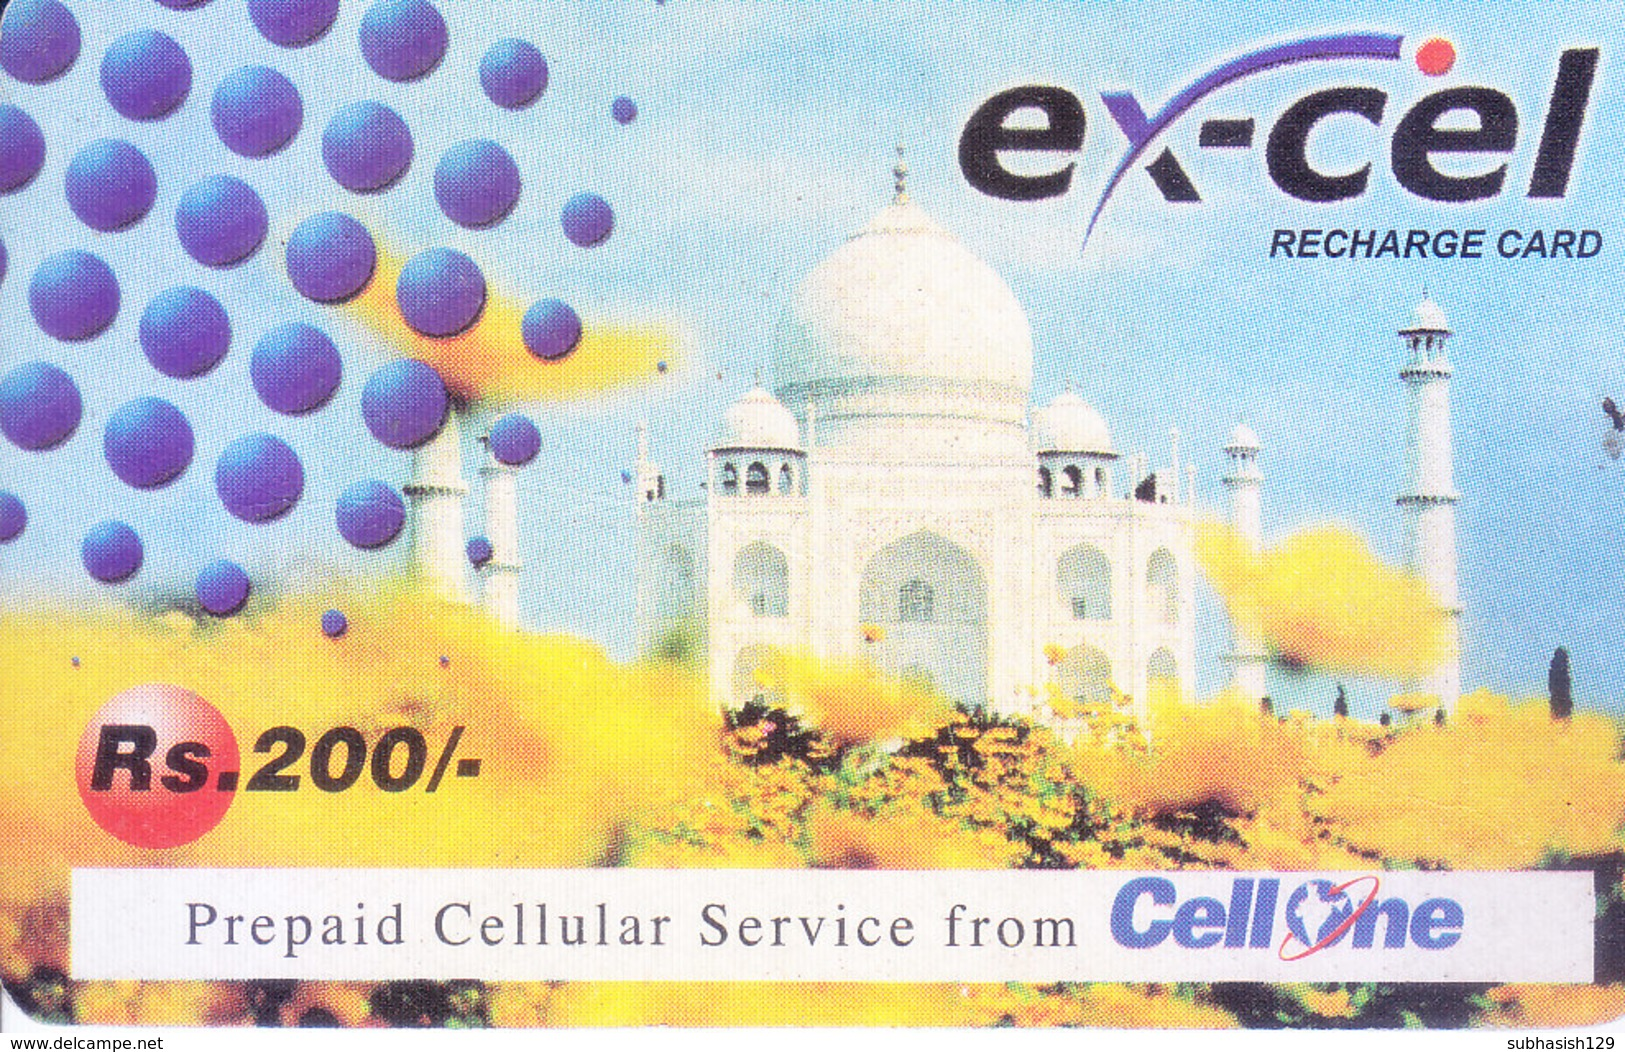 MOBILE / TELEPHONE CARD, INDIA - BSNL, EXCEL, RS. 200 RECHARGE CARD - Unclassified